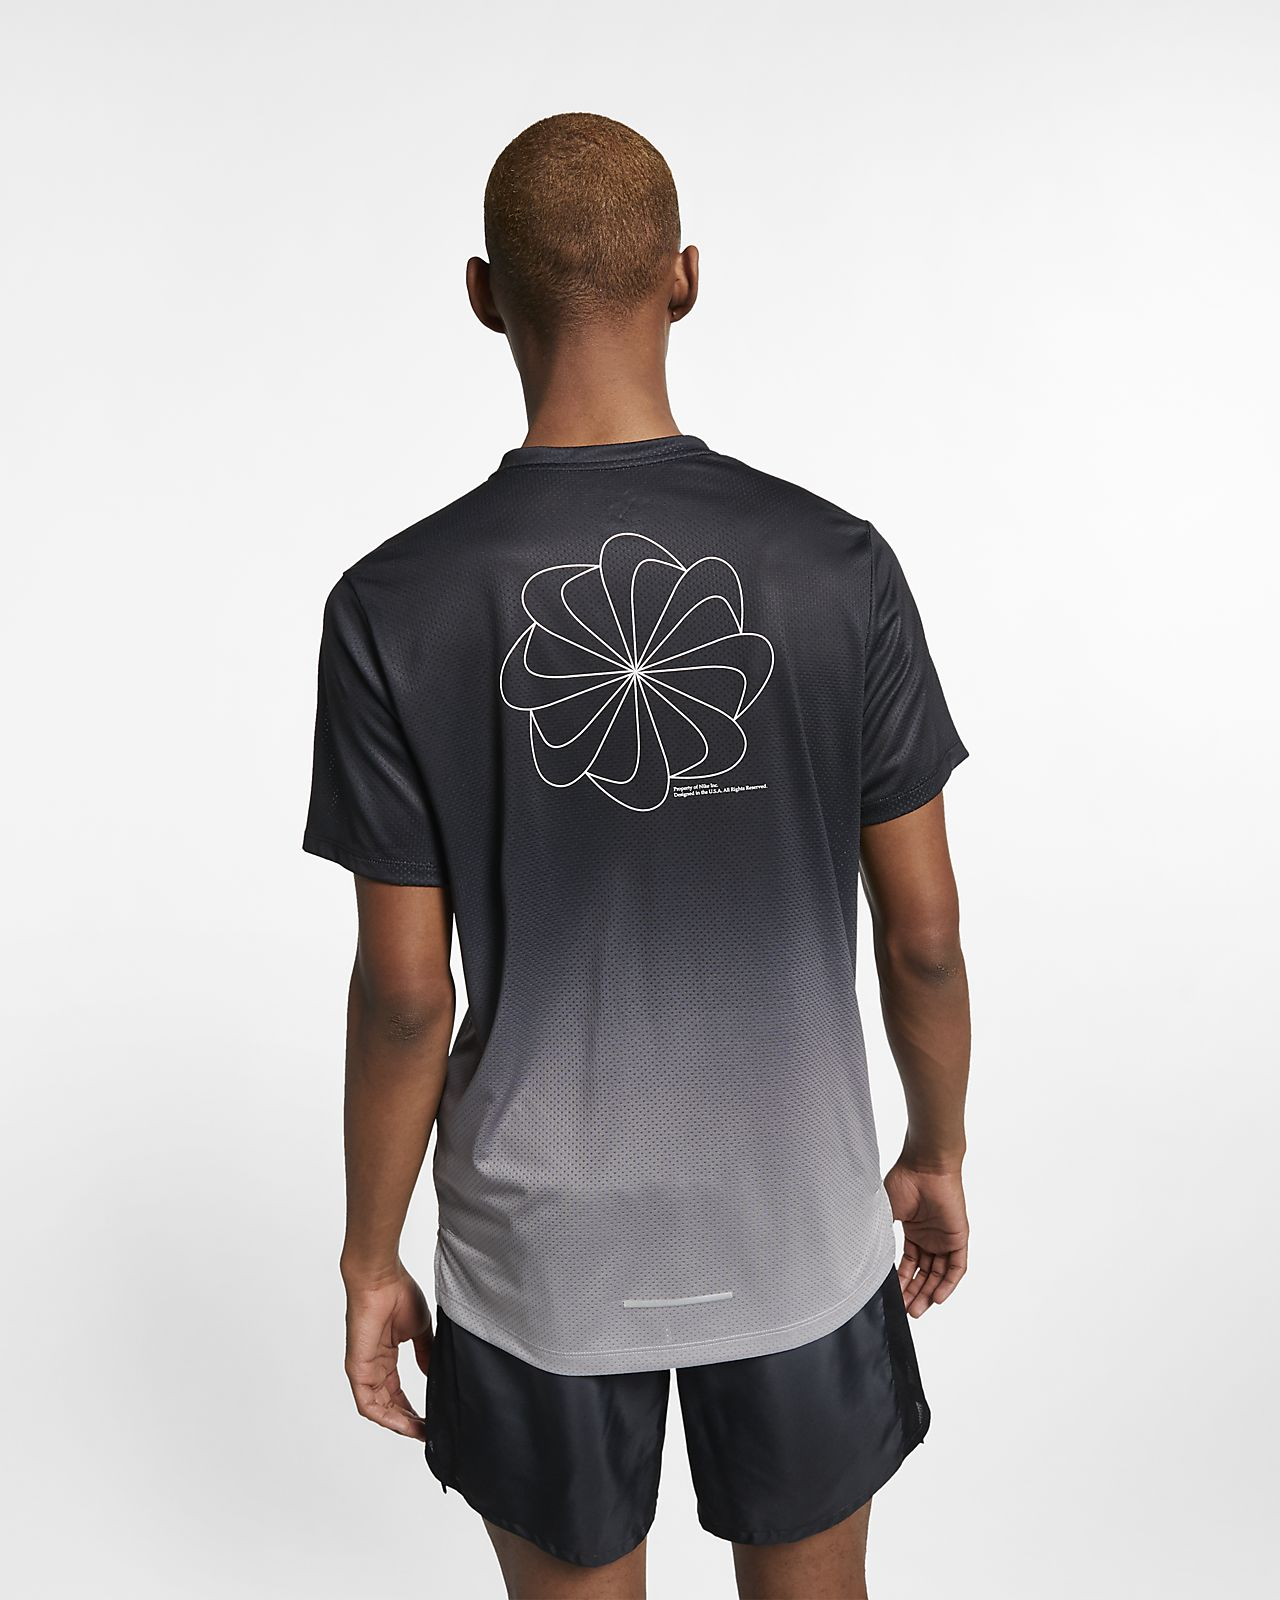 3b78da10 Nike Dri-FIT Miler Men's Short-Sleeve Printed Running Top. Nike.com